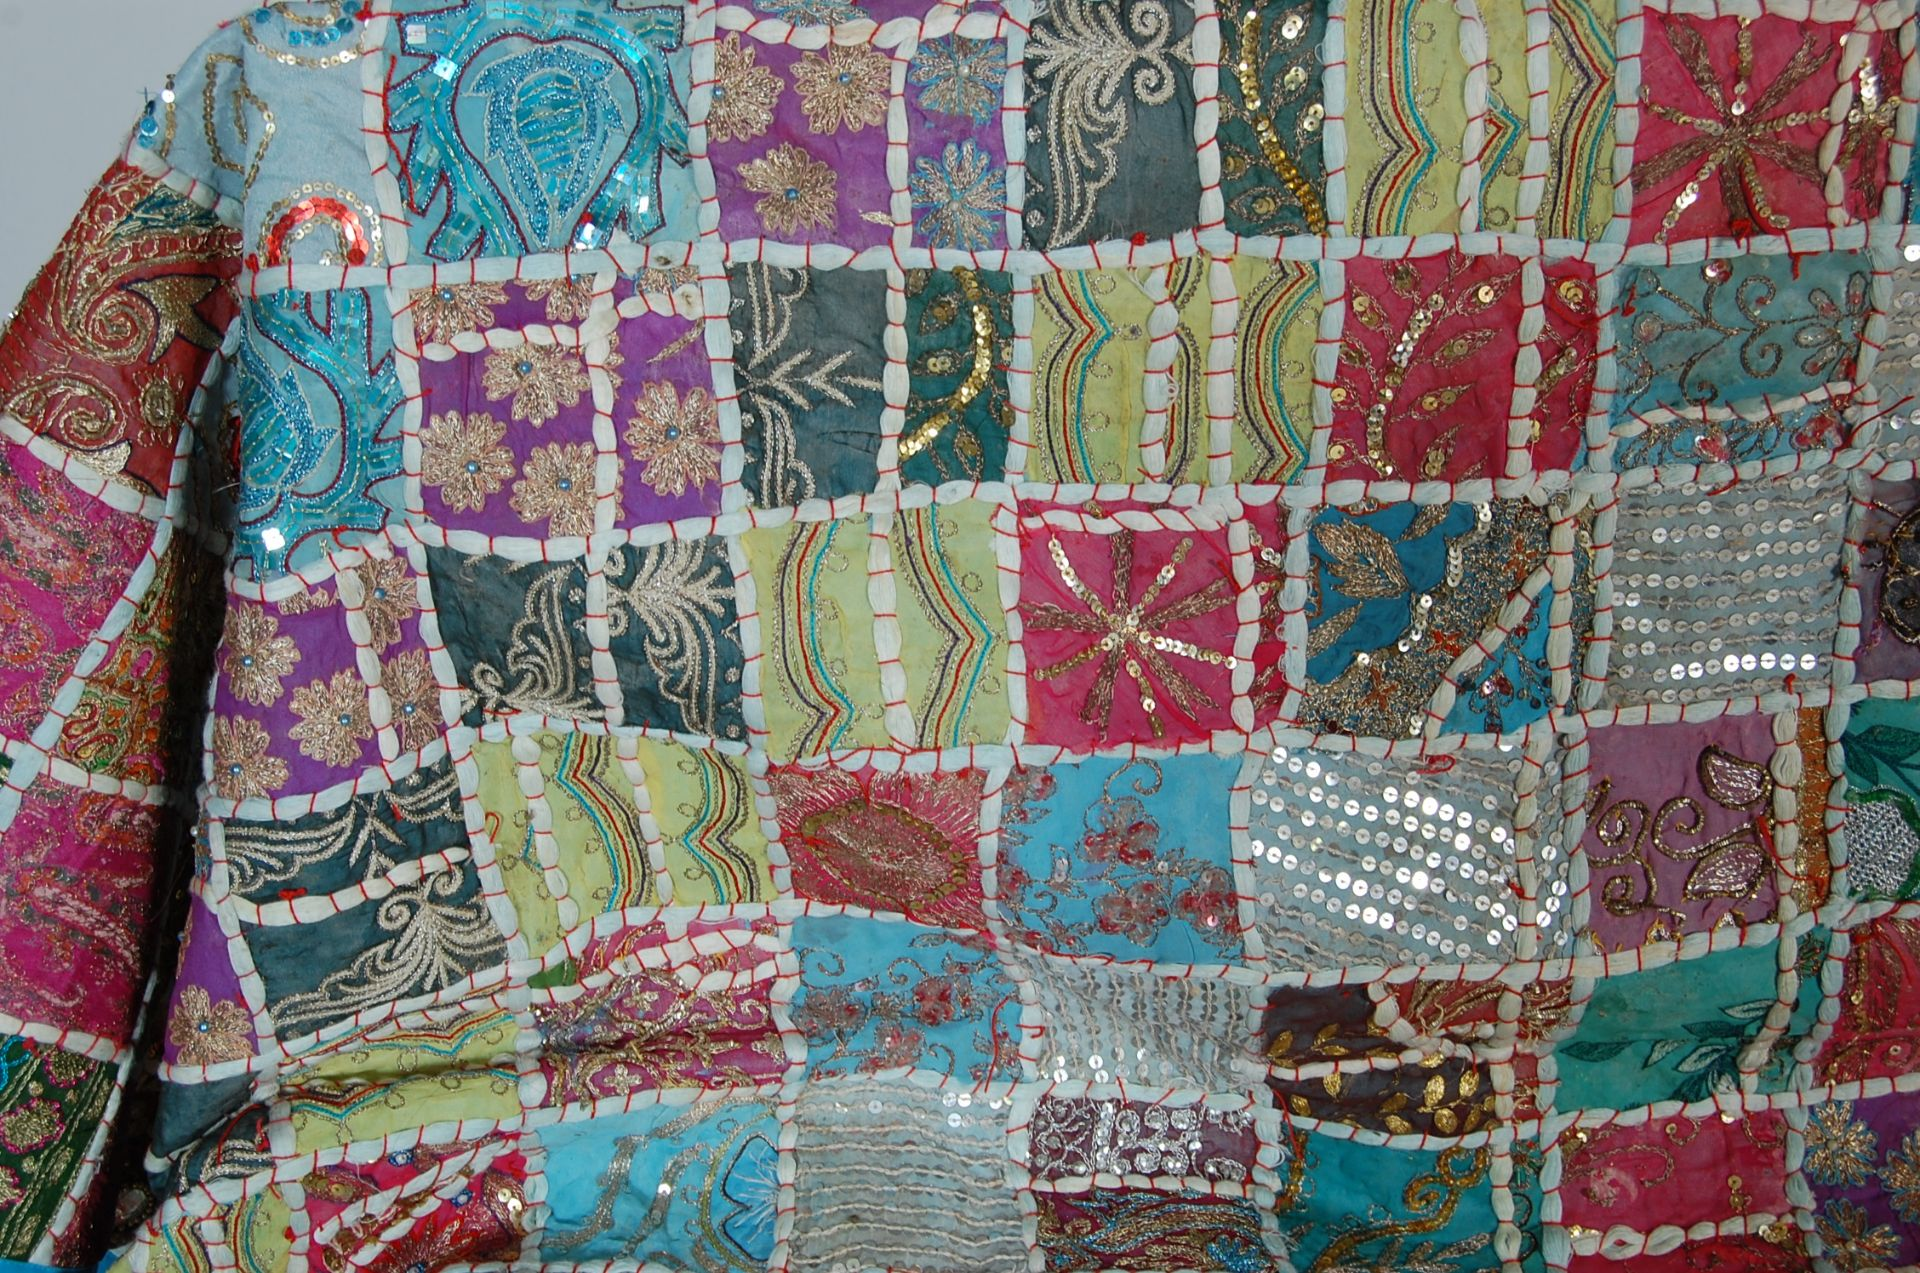 20TH CENTURY ANTIQUE STYLE TRADITIONAL PAKISTANI / RAJASTHANI / INDIAN PATCHWORK QUILT BED THROW - Image 3 of 11